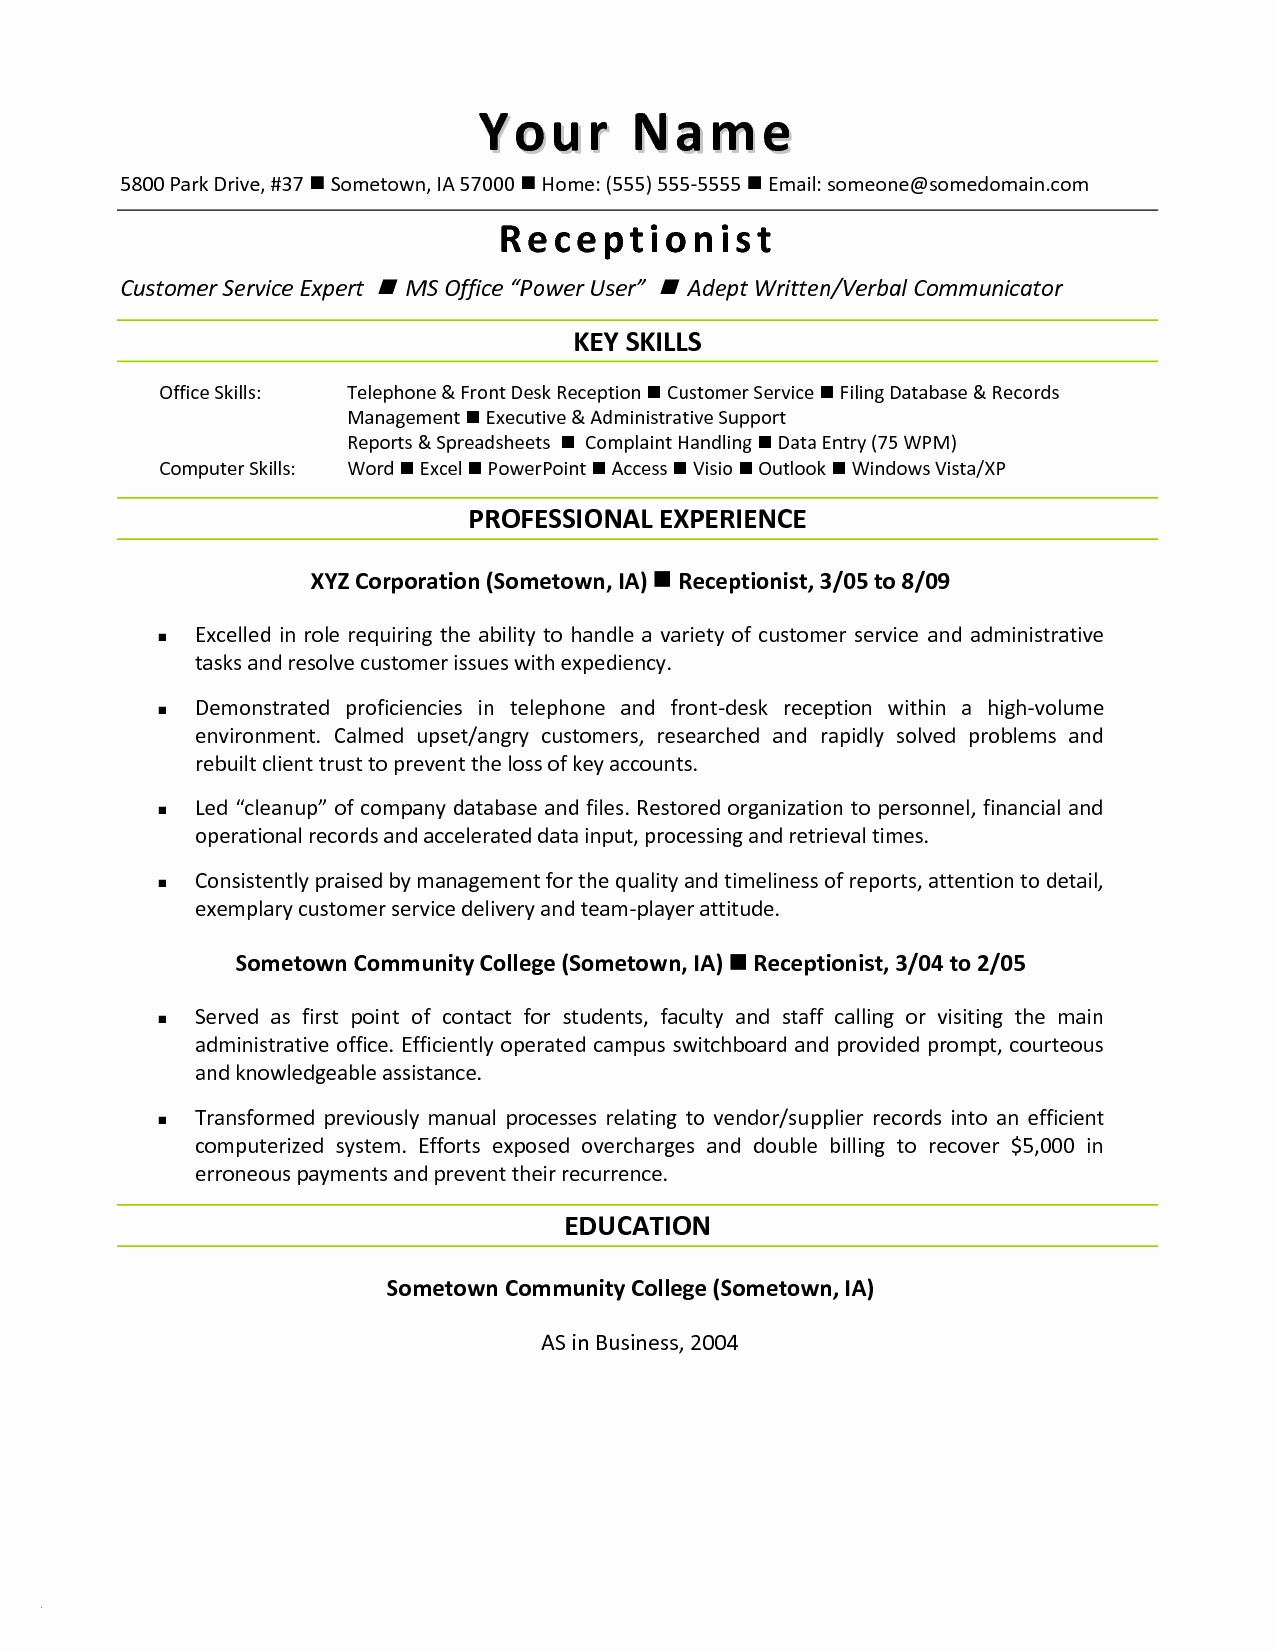 Going Paperless Letter to Customers Template - Medical Fice Resume Template Fresh Medical assistant Sample Resume